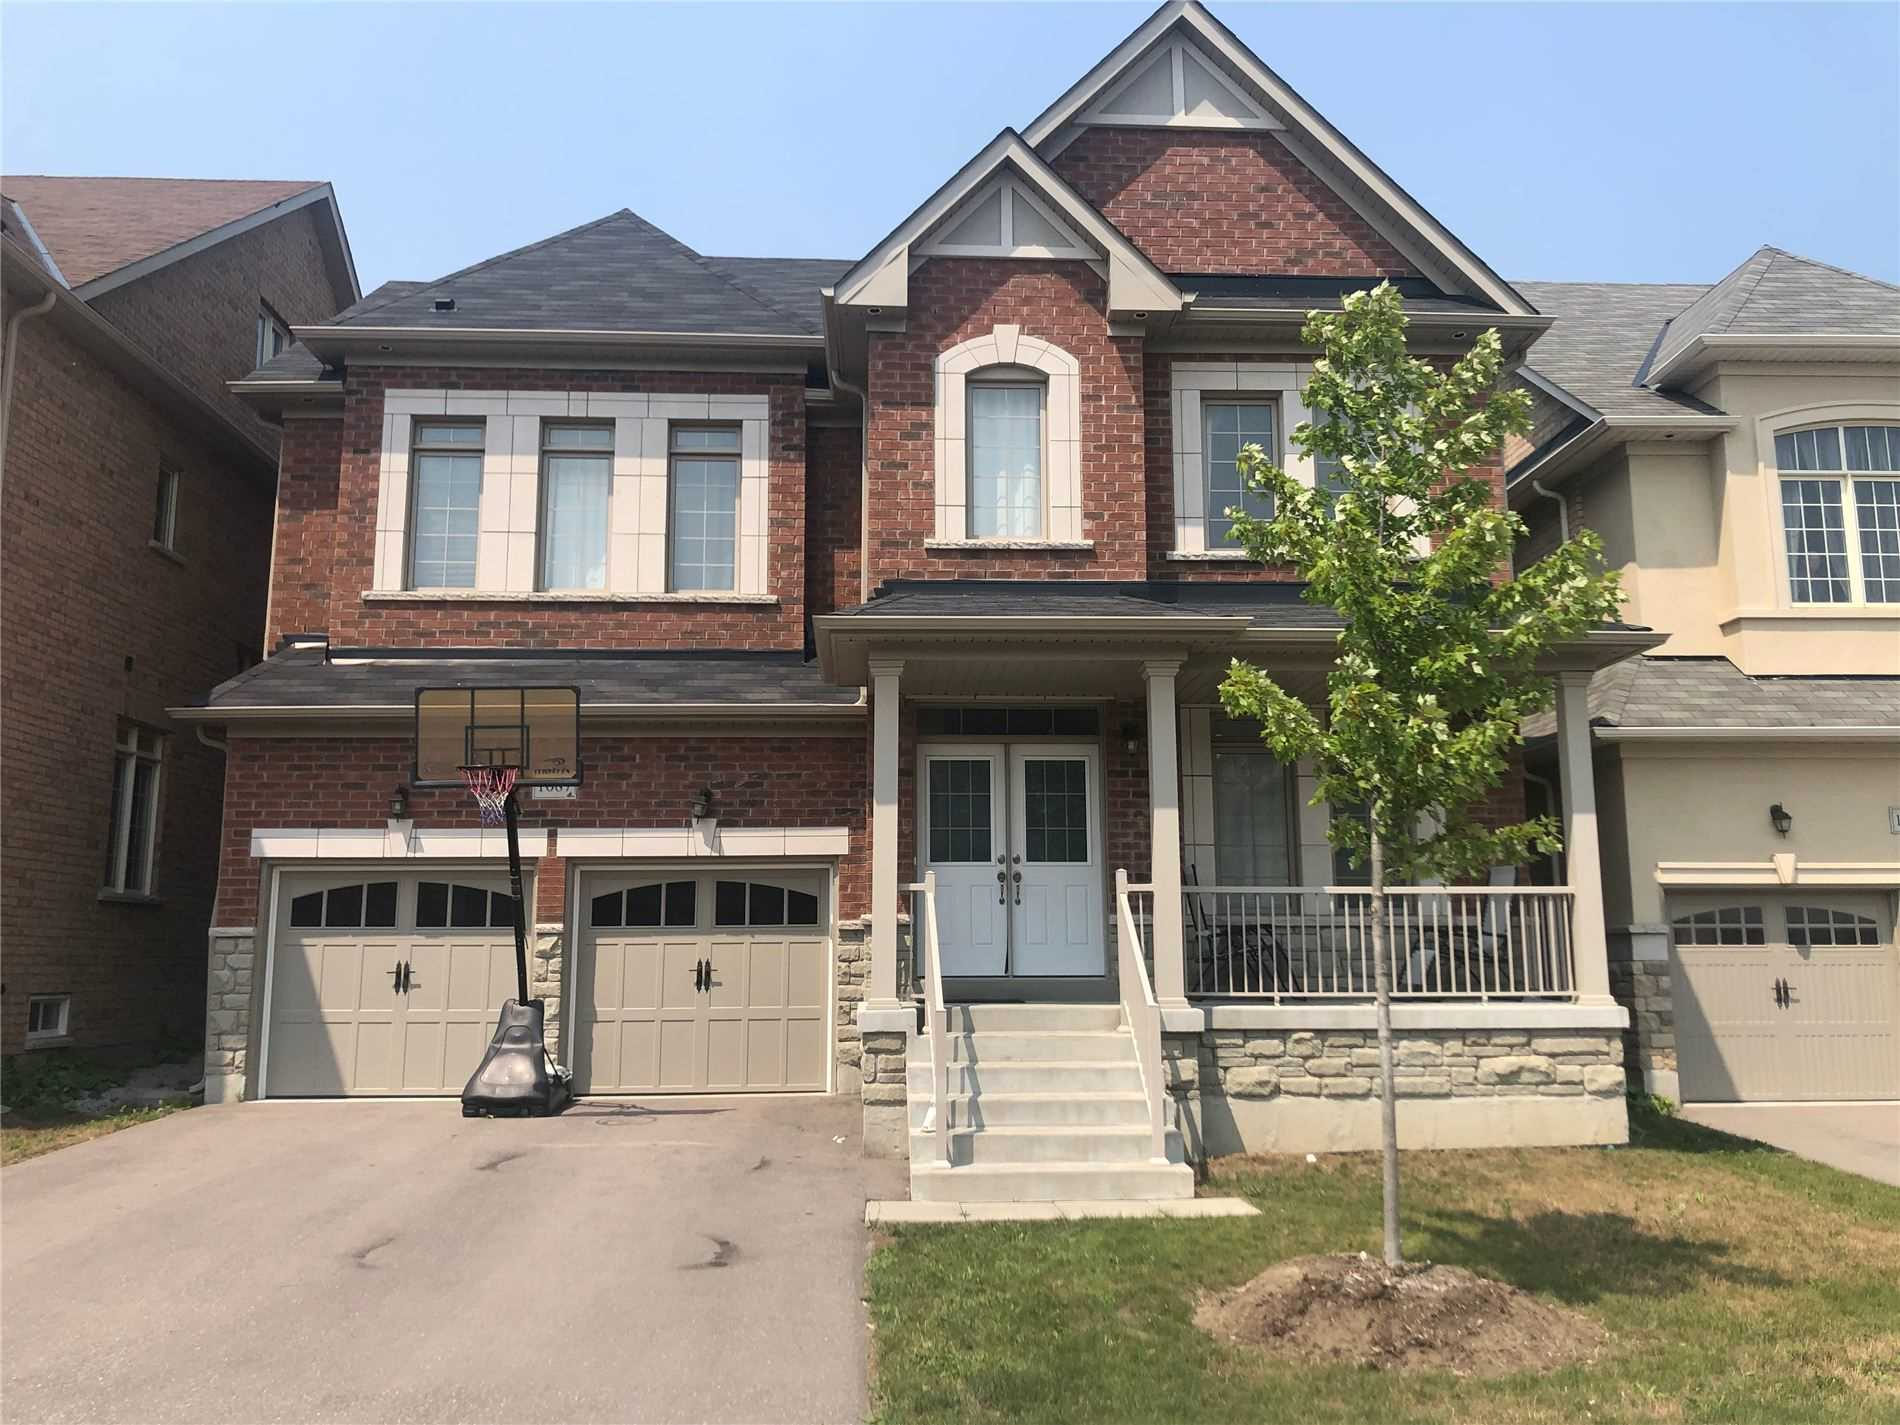 Detached house For Sale In Newmarket - 1087 Grainger Tr, Newmarket, Ontario, Canada L3X0G6 , 5 Bedrooms Bedrooms, ,5 BathroomsBathrooms,Detached,For Sale,Grainger